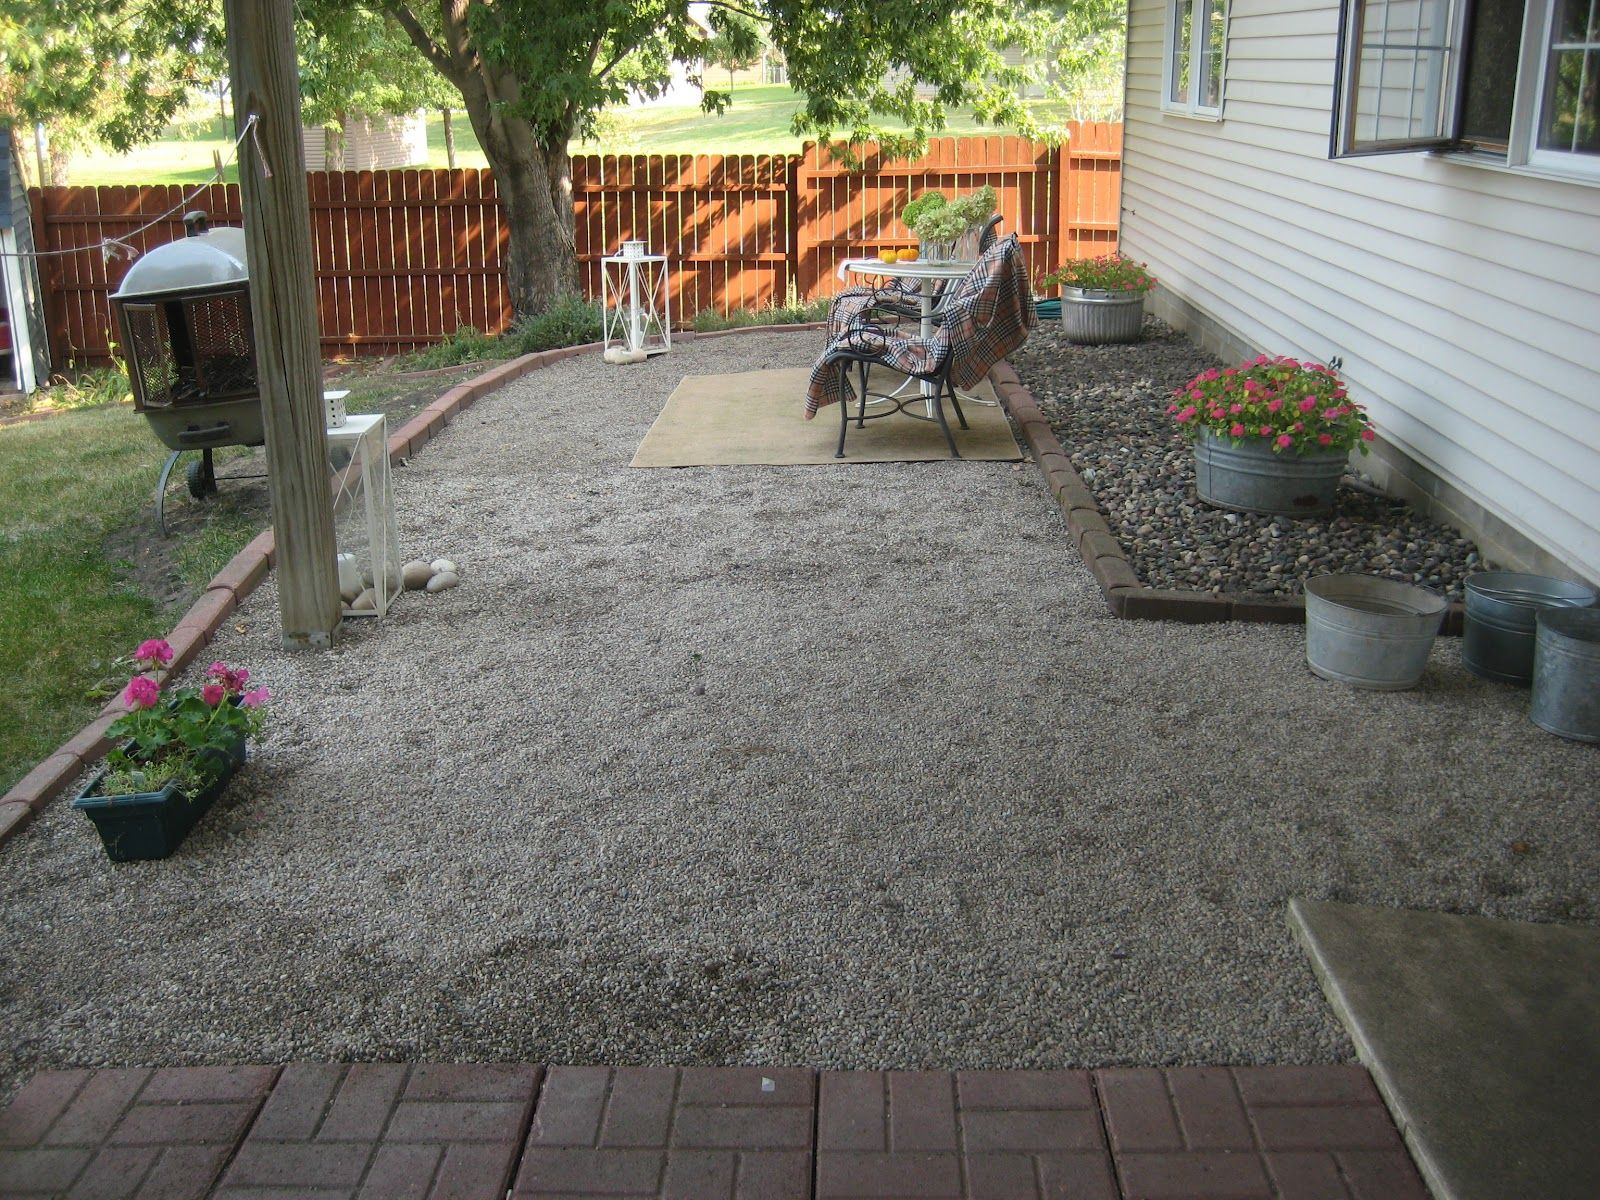 Patio: Garden Behind The House With A Floor Of Gravel Road ... on Patio And Gravel Garden Ideas id=70806